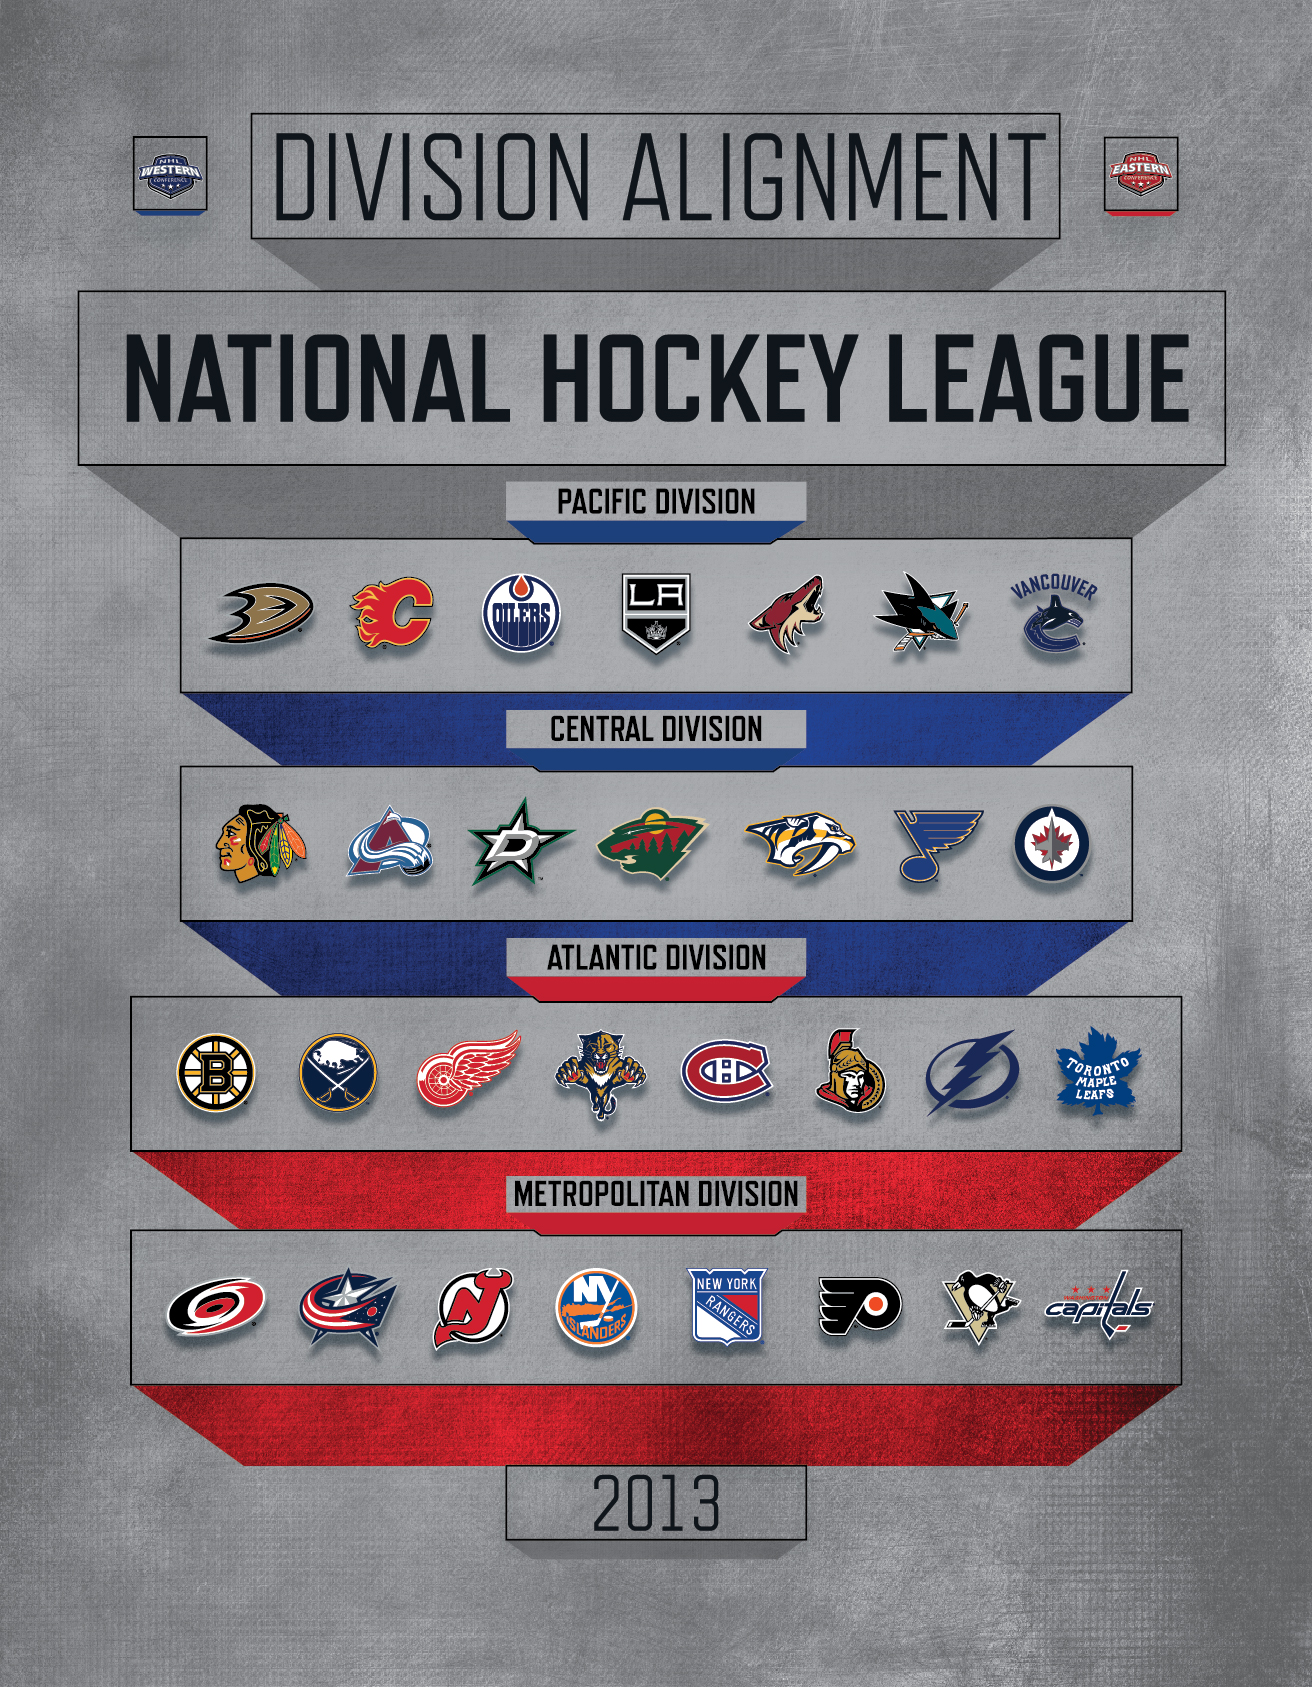 NHL_Division_Alignment--01.jpg